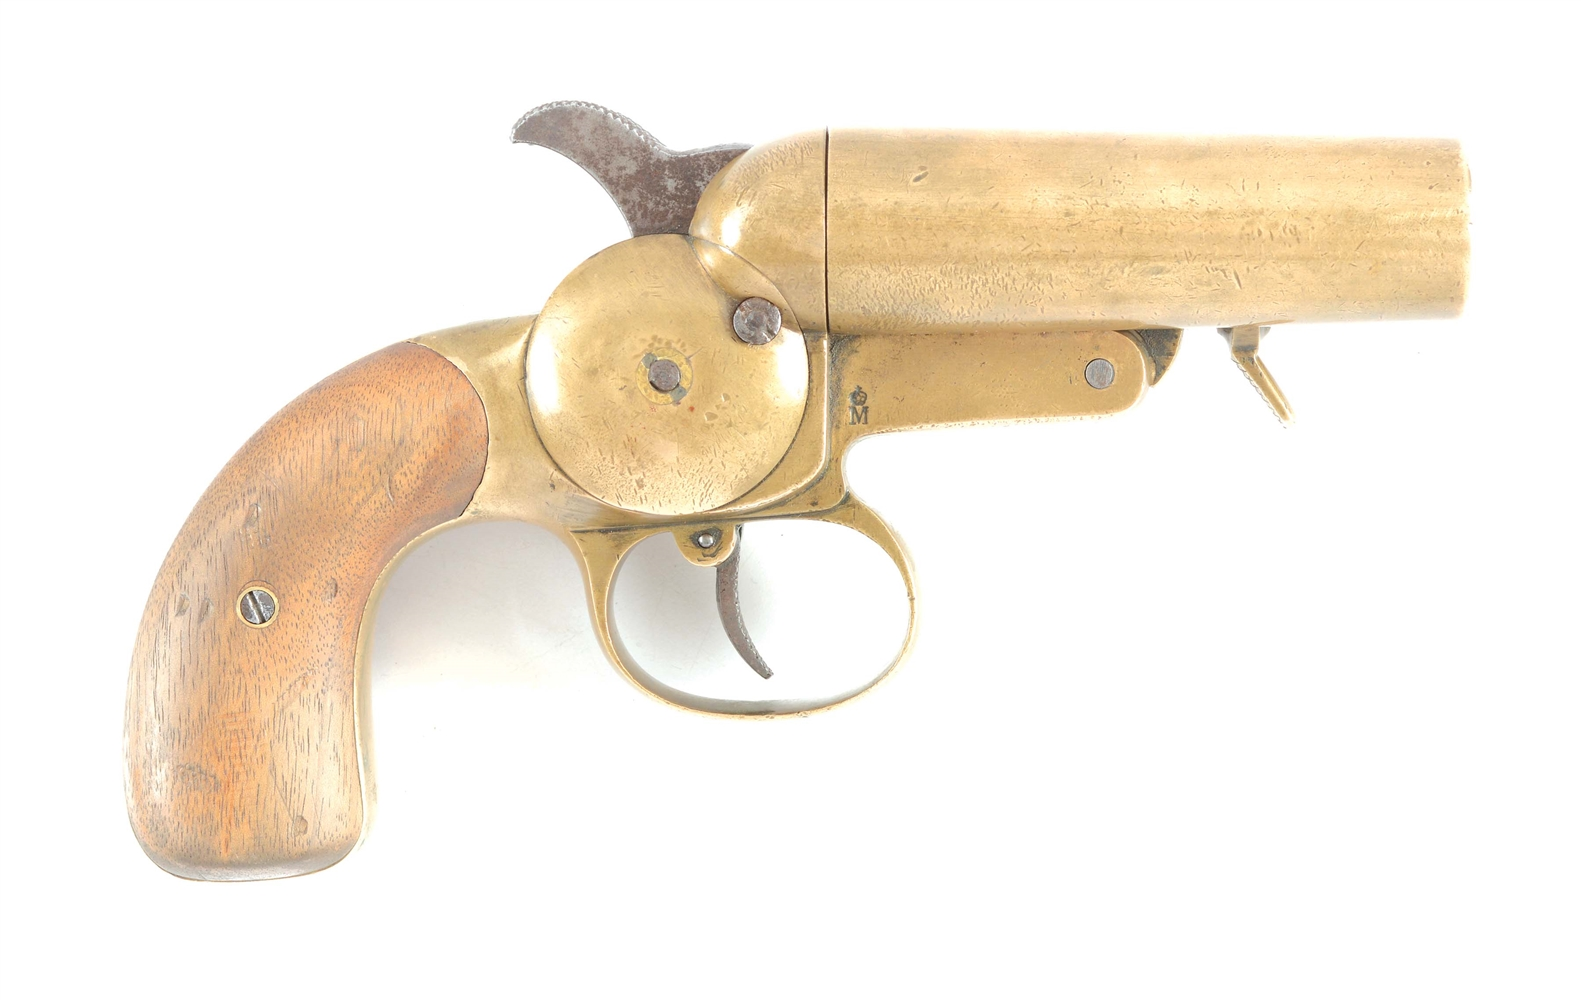 RARE WORLD WAR I IMPERIAL GERMAN KRIEGSMARINE NAVY MODEL 1899 DOUBLE BARREL BRASS FLARE PISTOL.